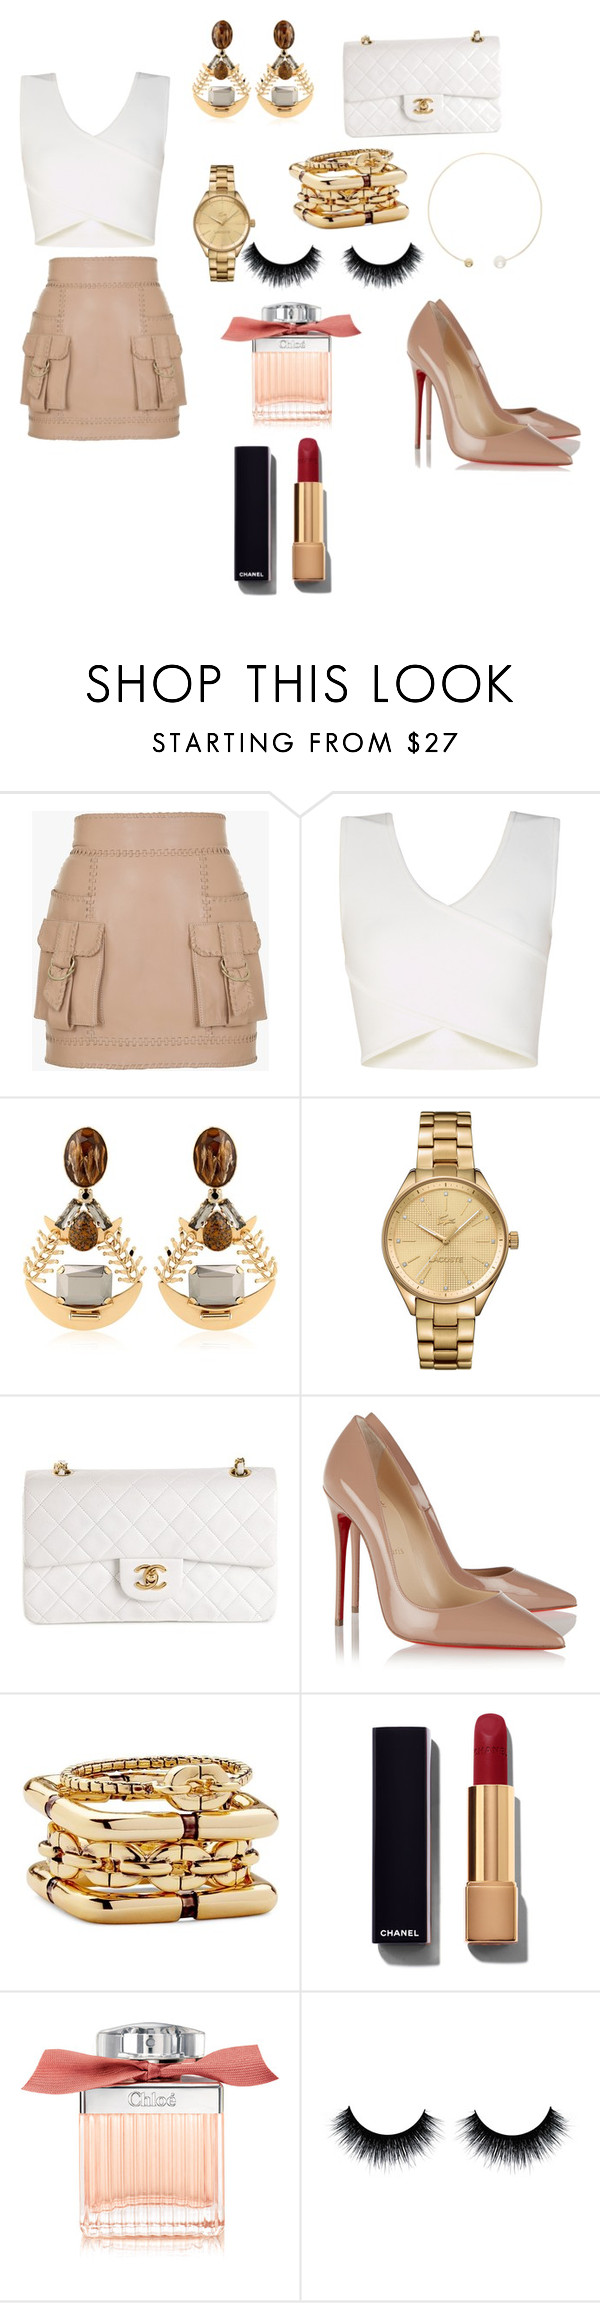 """""""Nude"""" by dula838 ❤ liked on Polyvore featuring Balmain, BCBGMAXAZRIA, REMINISCENCE, Lacoste, Chanel, Christian Louboutin, Diane Von Furstenberg, Chloé, Sophie Bille Brahe and women's clothing"""